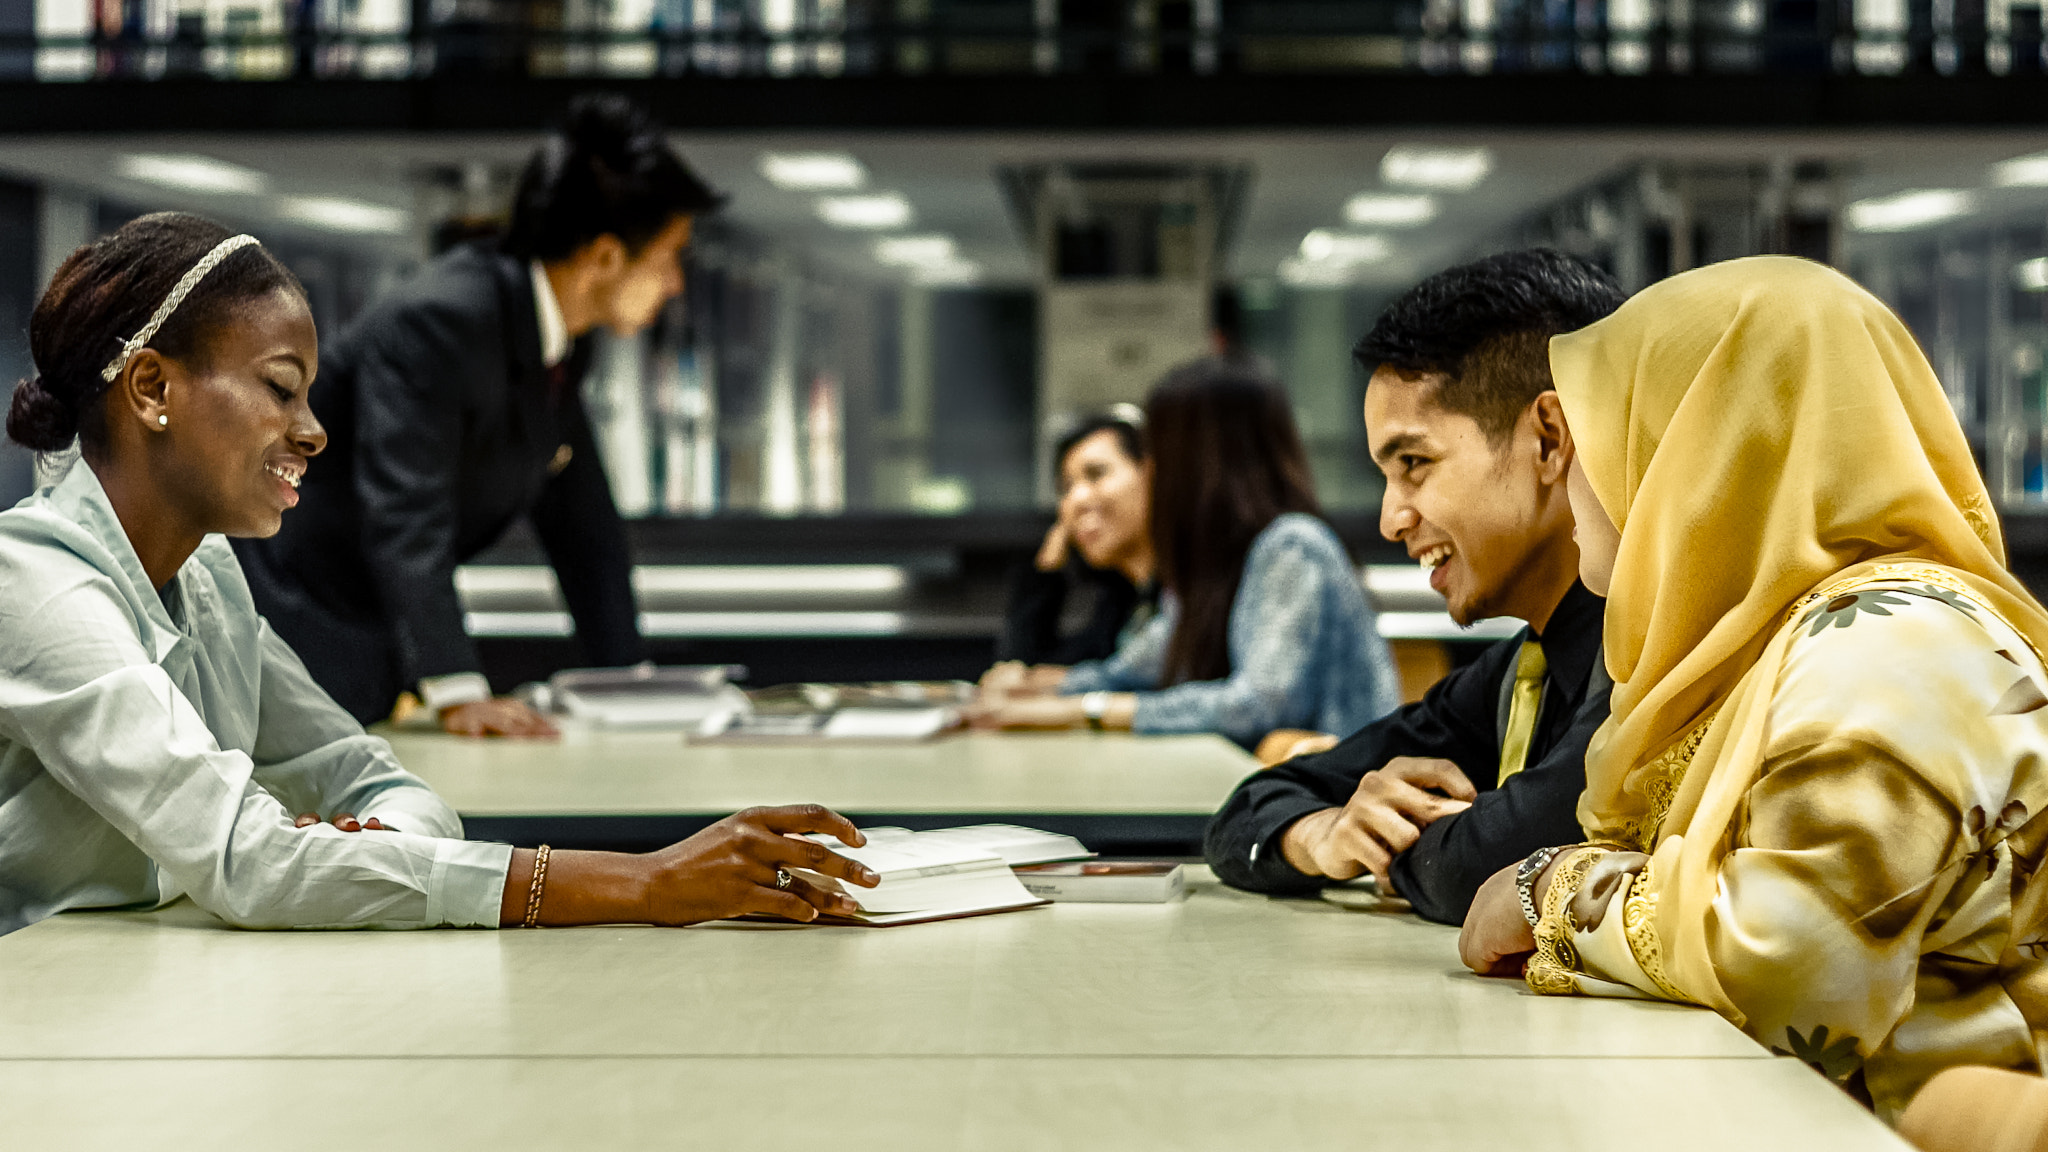 Photograph Student Discussing at Library by Aqwa Qawiem on 500px